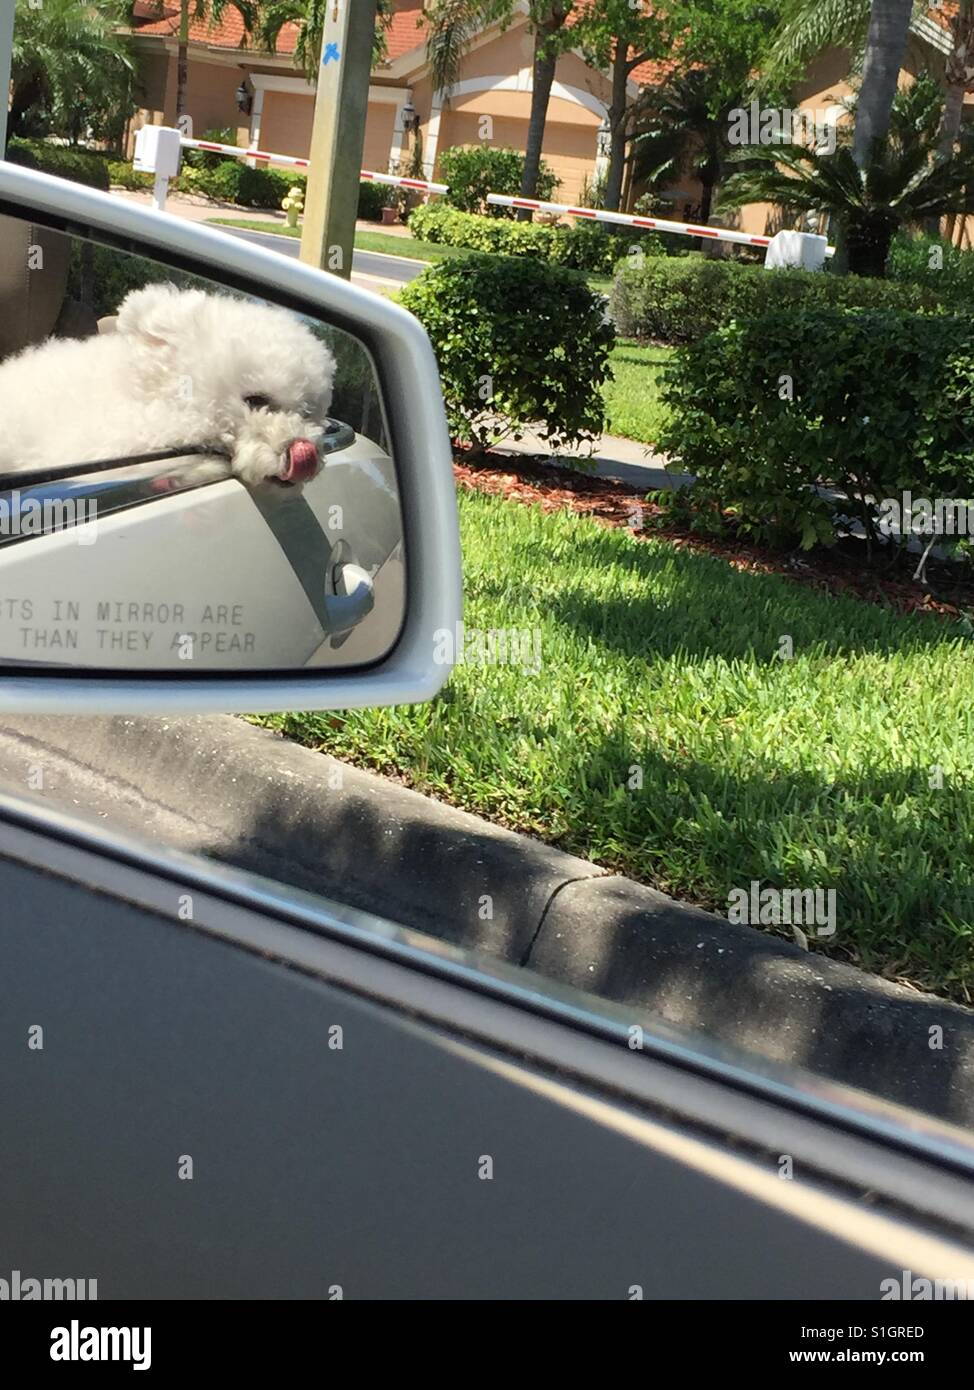 Dog in side car mirror head out window young licking nose - Stock Image